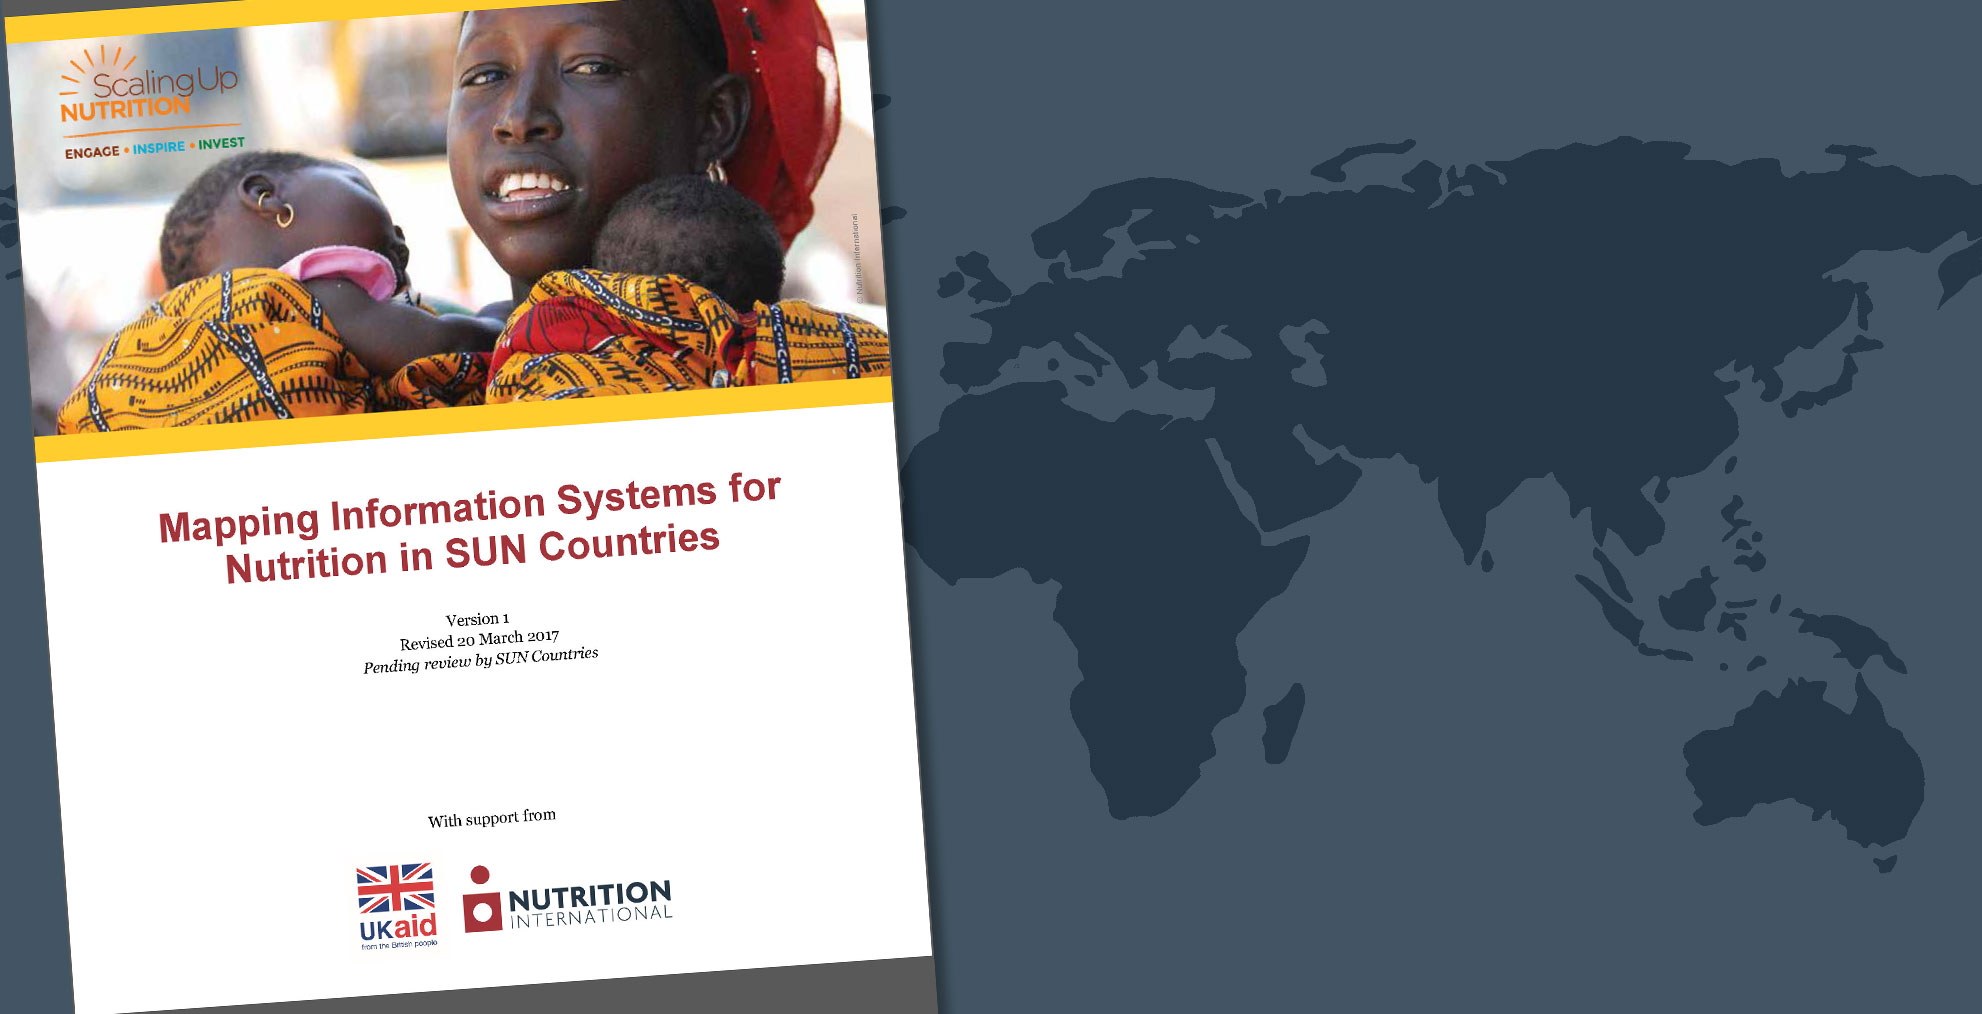 Cover image of the publication Mapping information systems for nutrition in Sun Countries with a world map in the background.